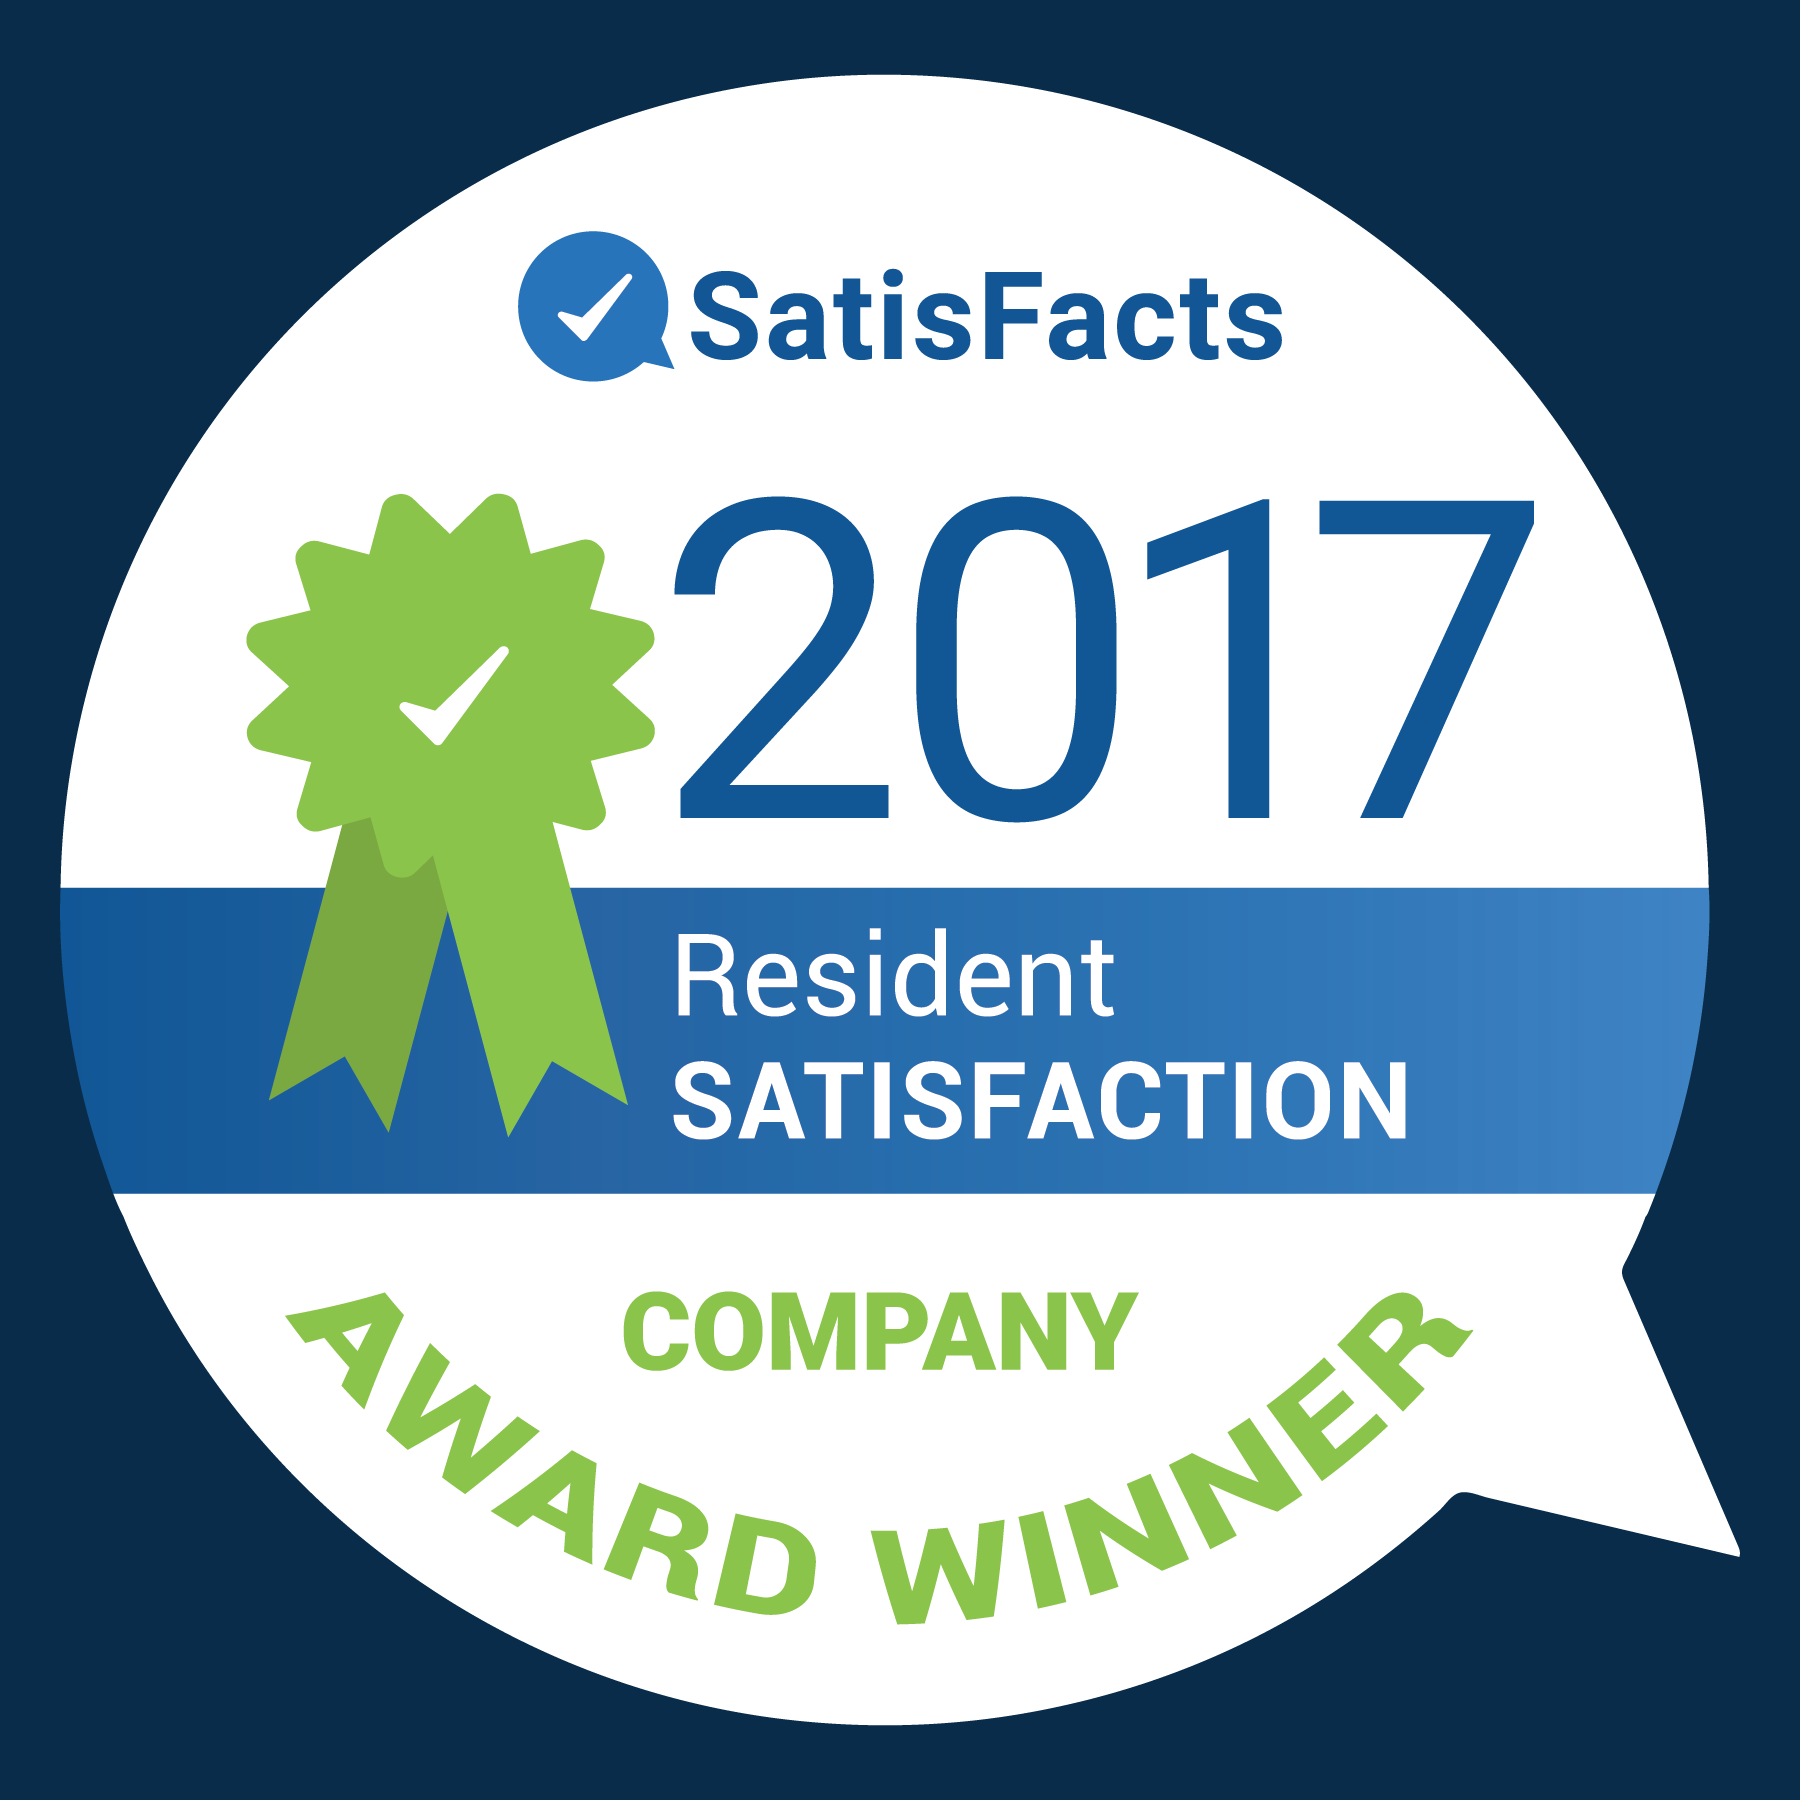 SatisFacts Company Award 2017